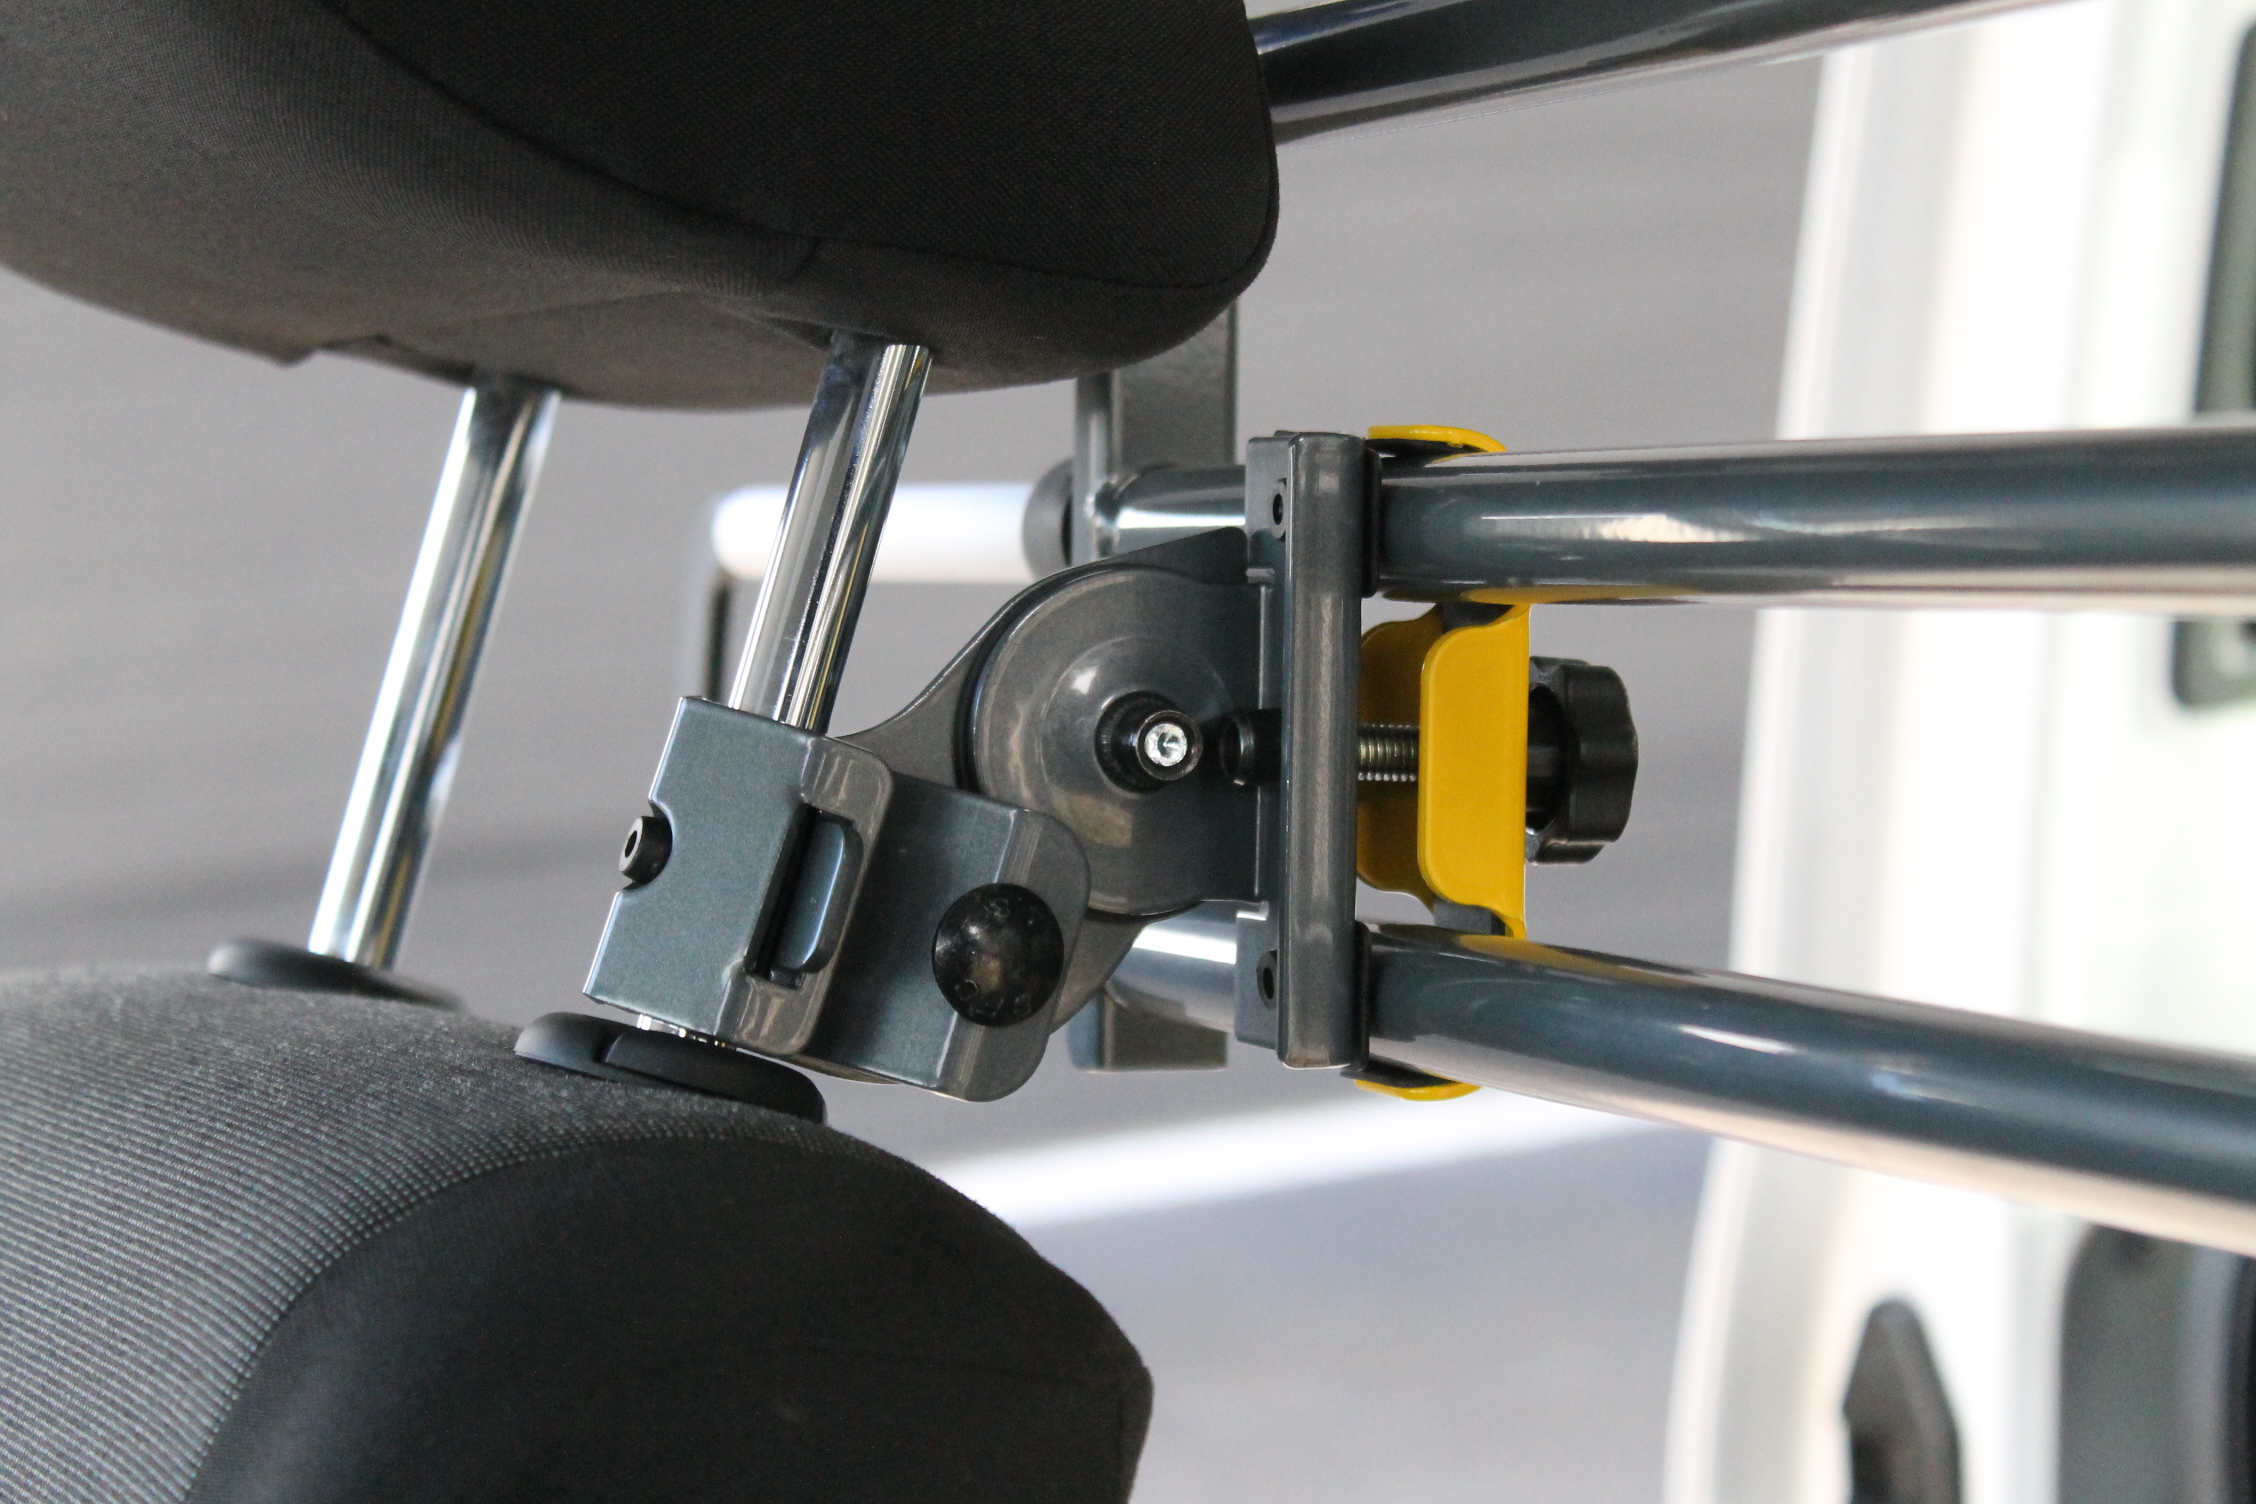 The Variobarrier HR fitted to the headrest pole